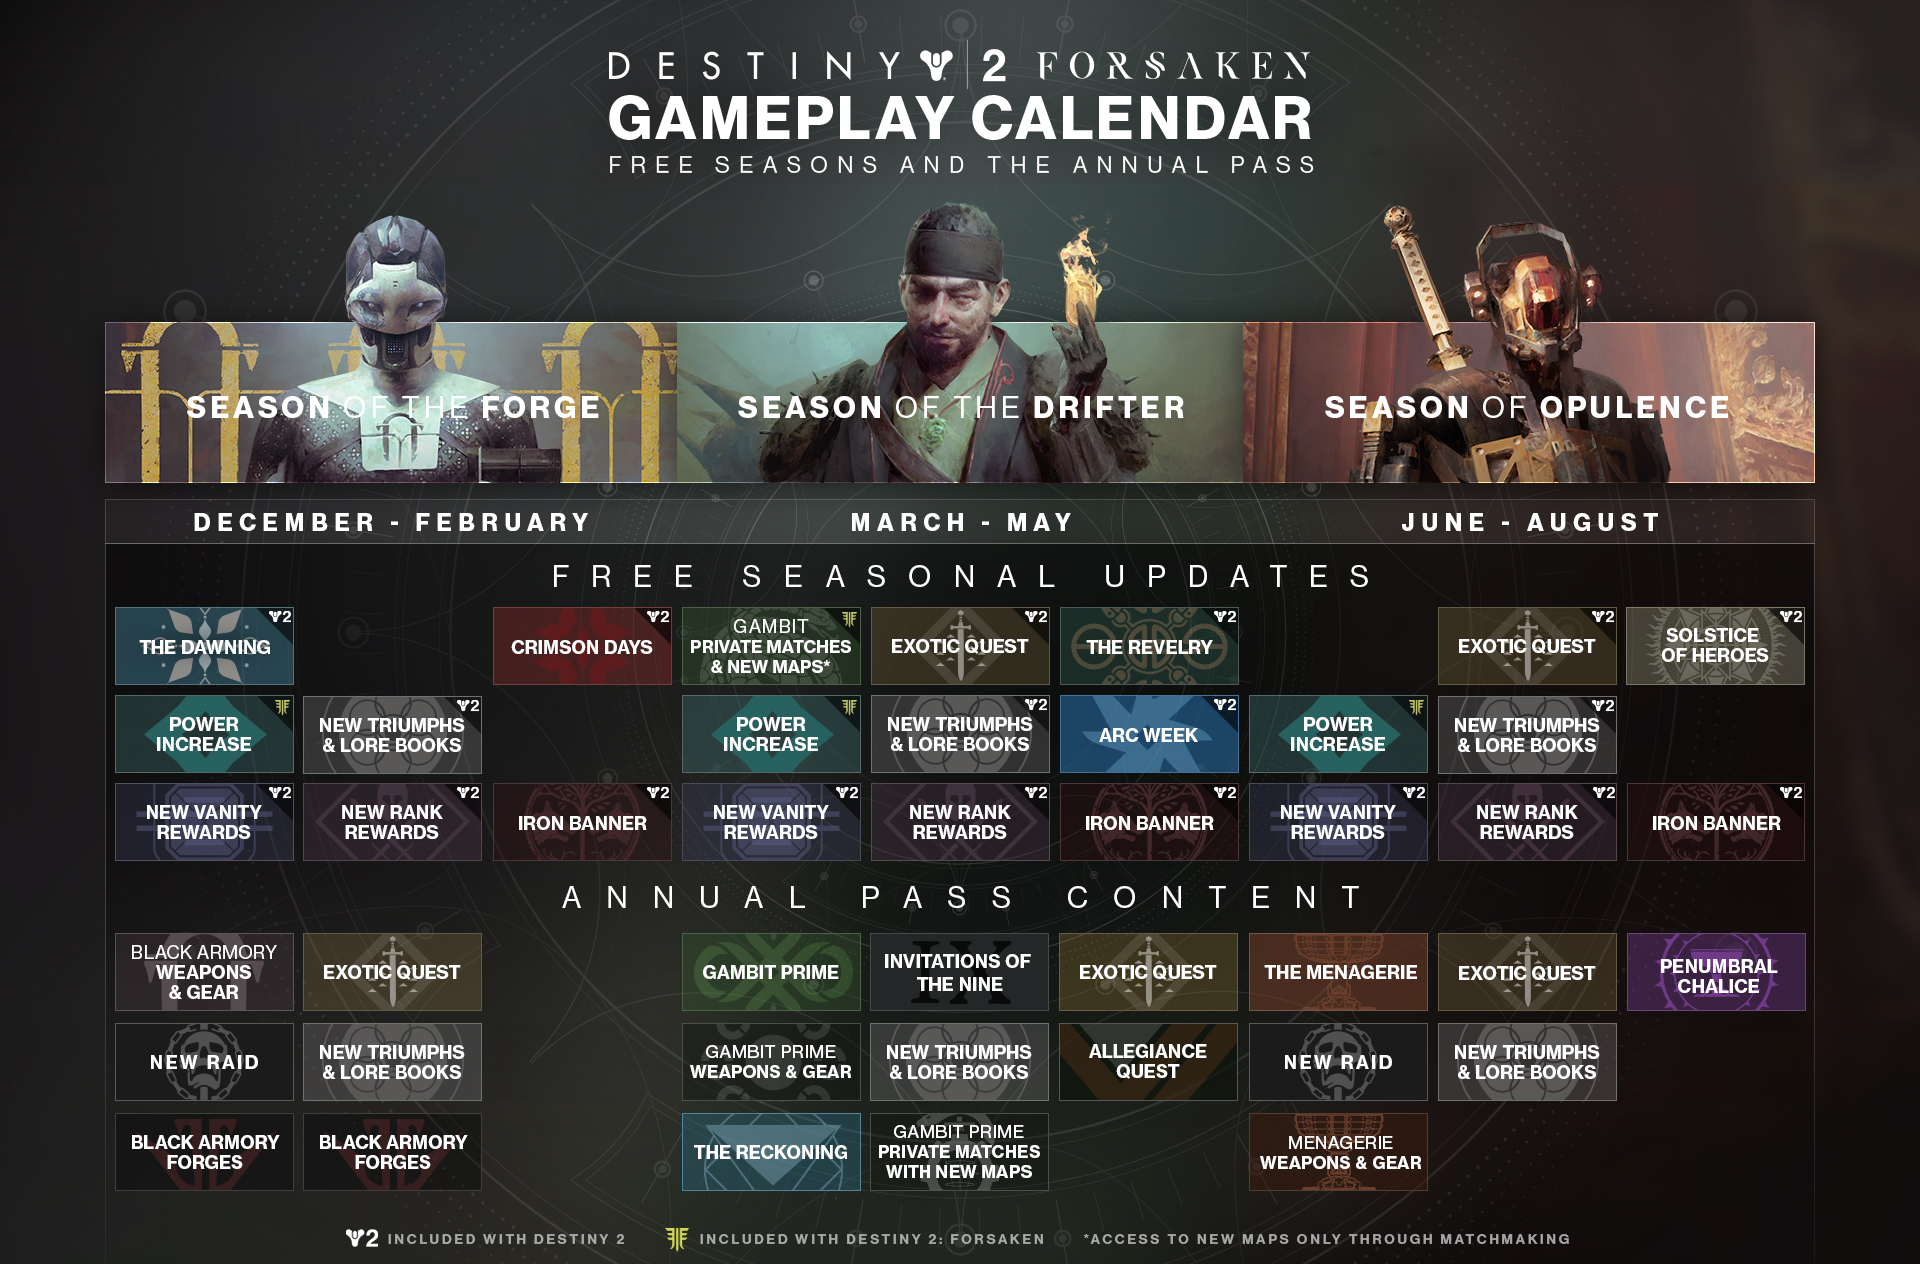 Destiny 2 PC: Season of Opulence Goes to Jared - The